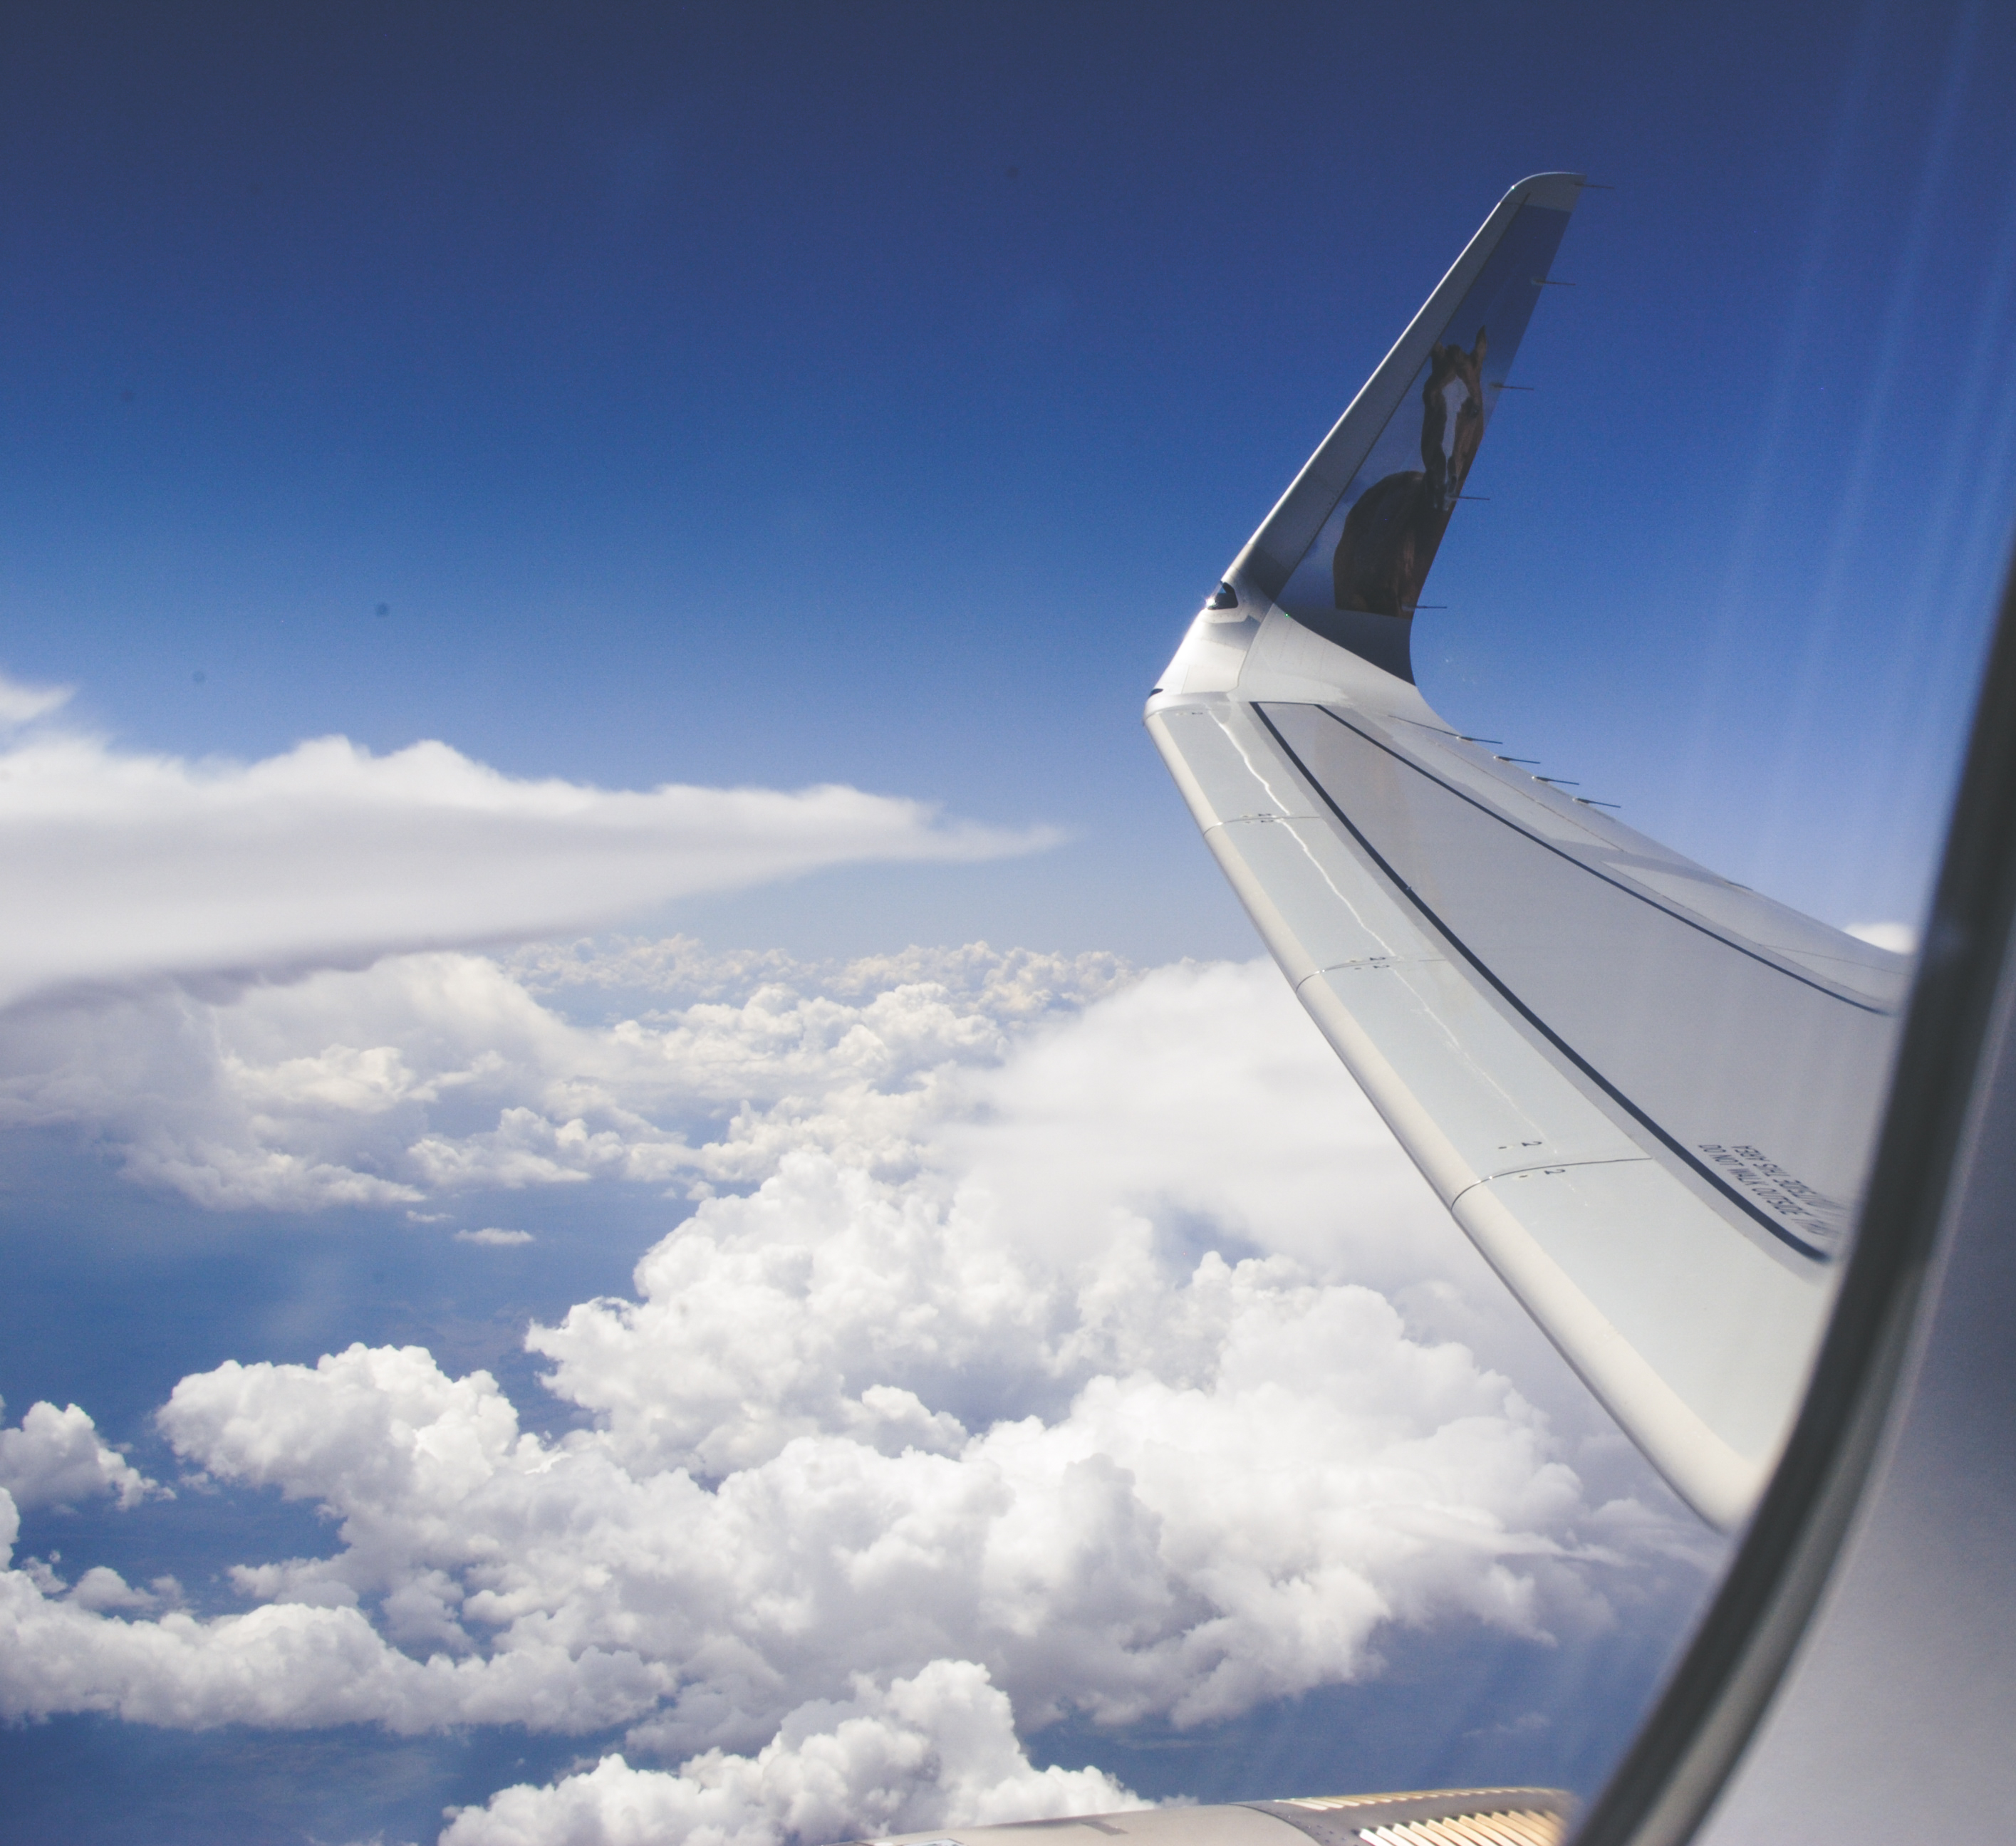 Car Wallpaper Iphone X Free Stock Photo Of Aerial Airliner Airplane